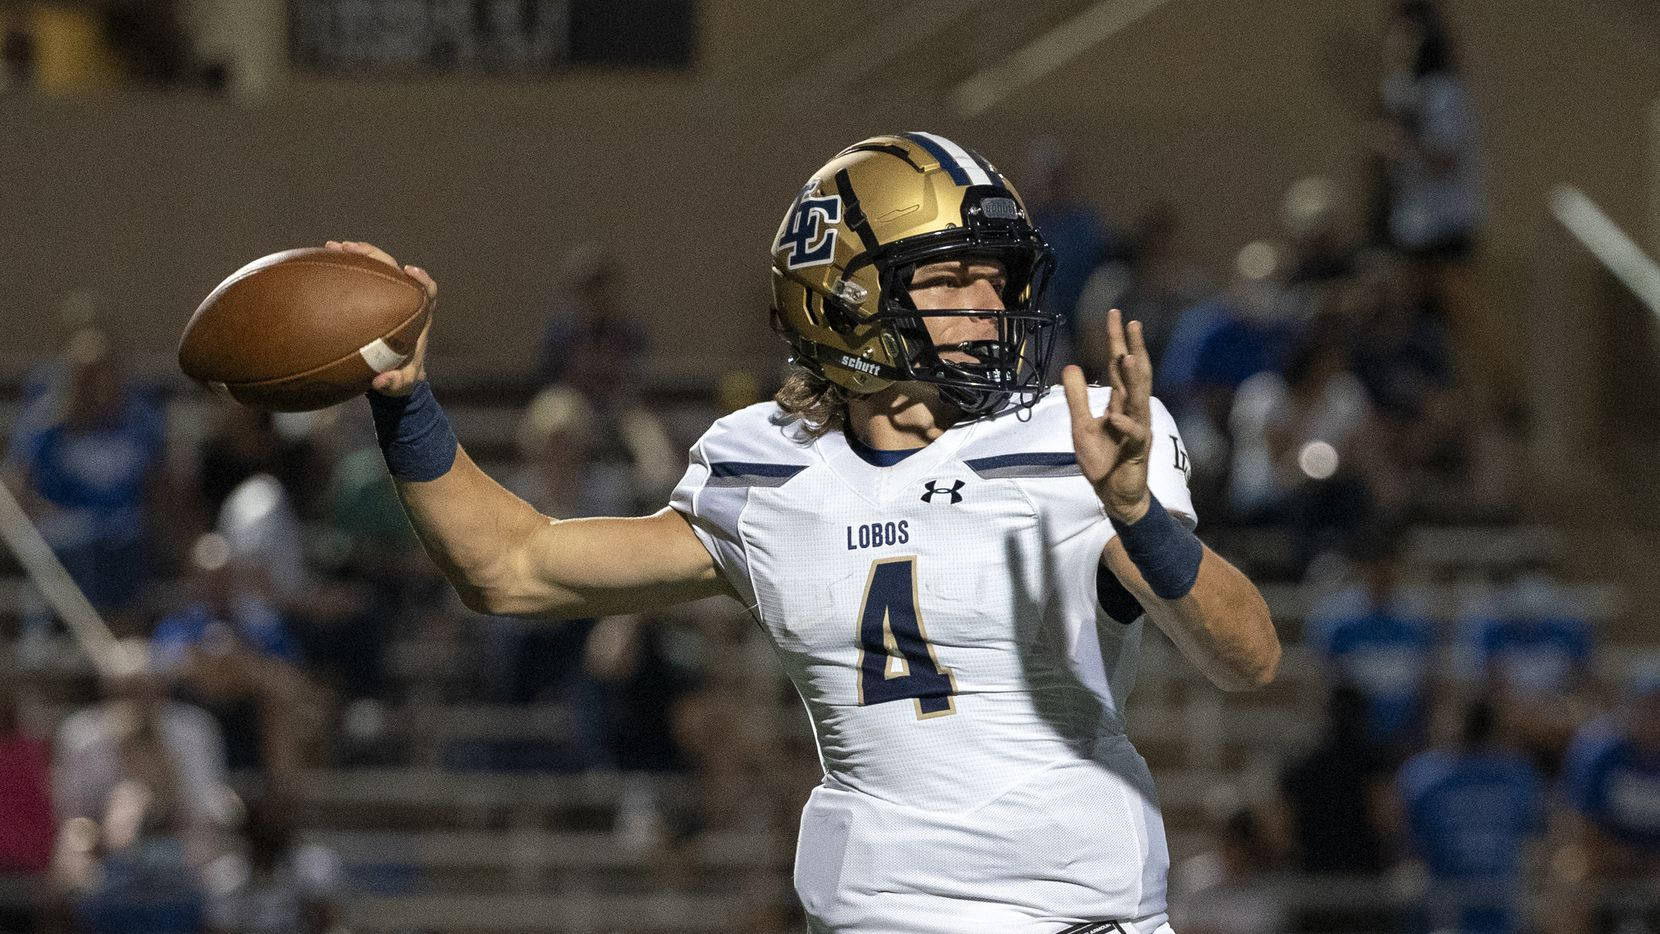 Little Elm senior quarterback John Mateer (4) throws a pass during the first half of a high school football game against Plano West on Friday, Sept. 10, 2021 at John Clark Stadium in Plano, Texas. (Jeffrey McWhorter/Special Contributor)